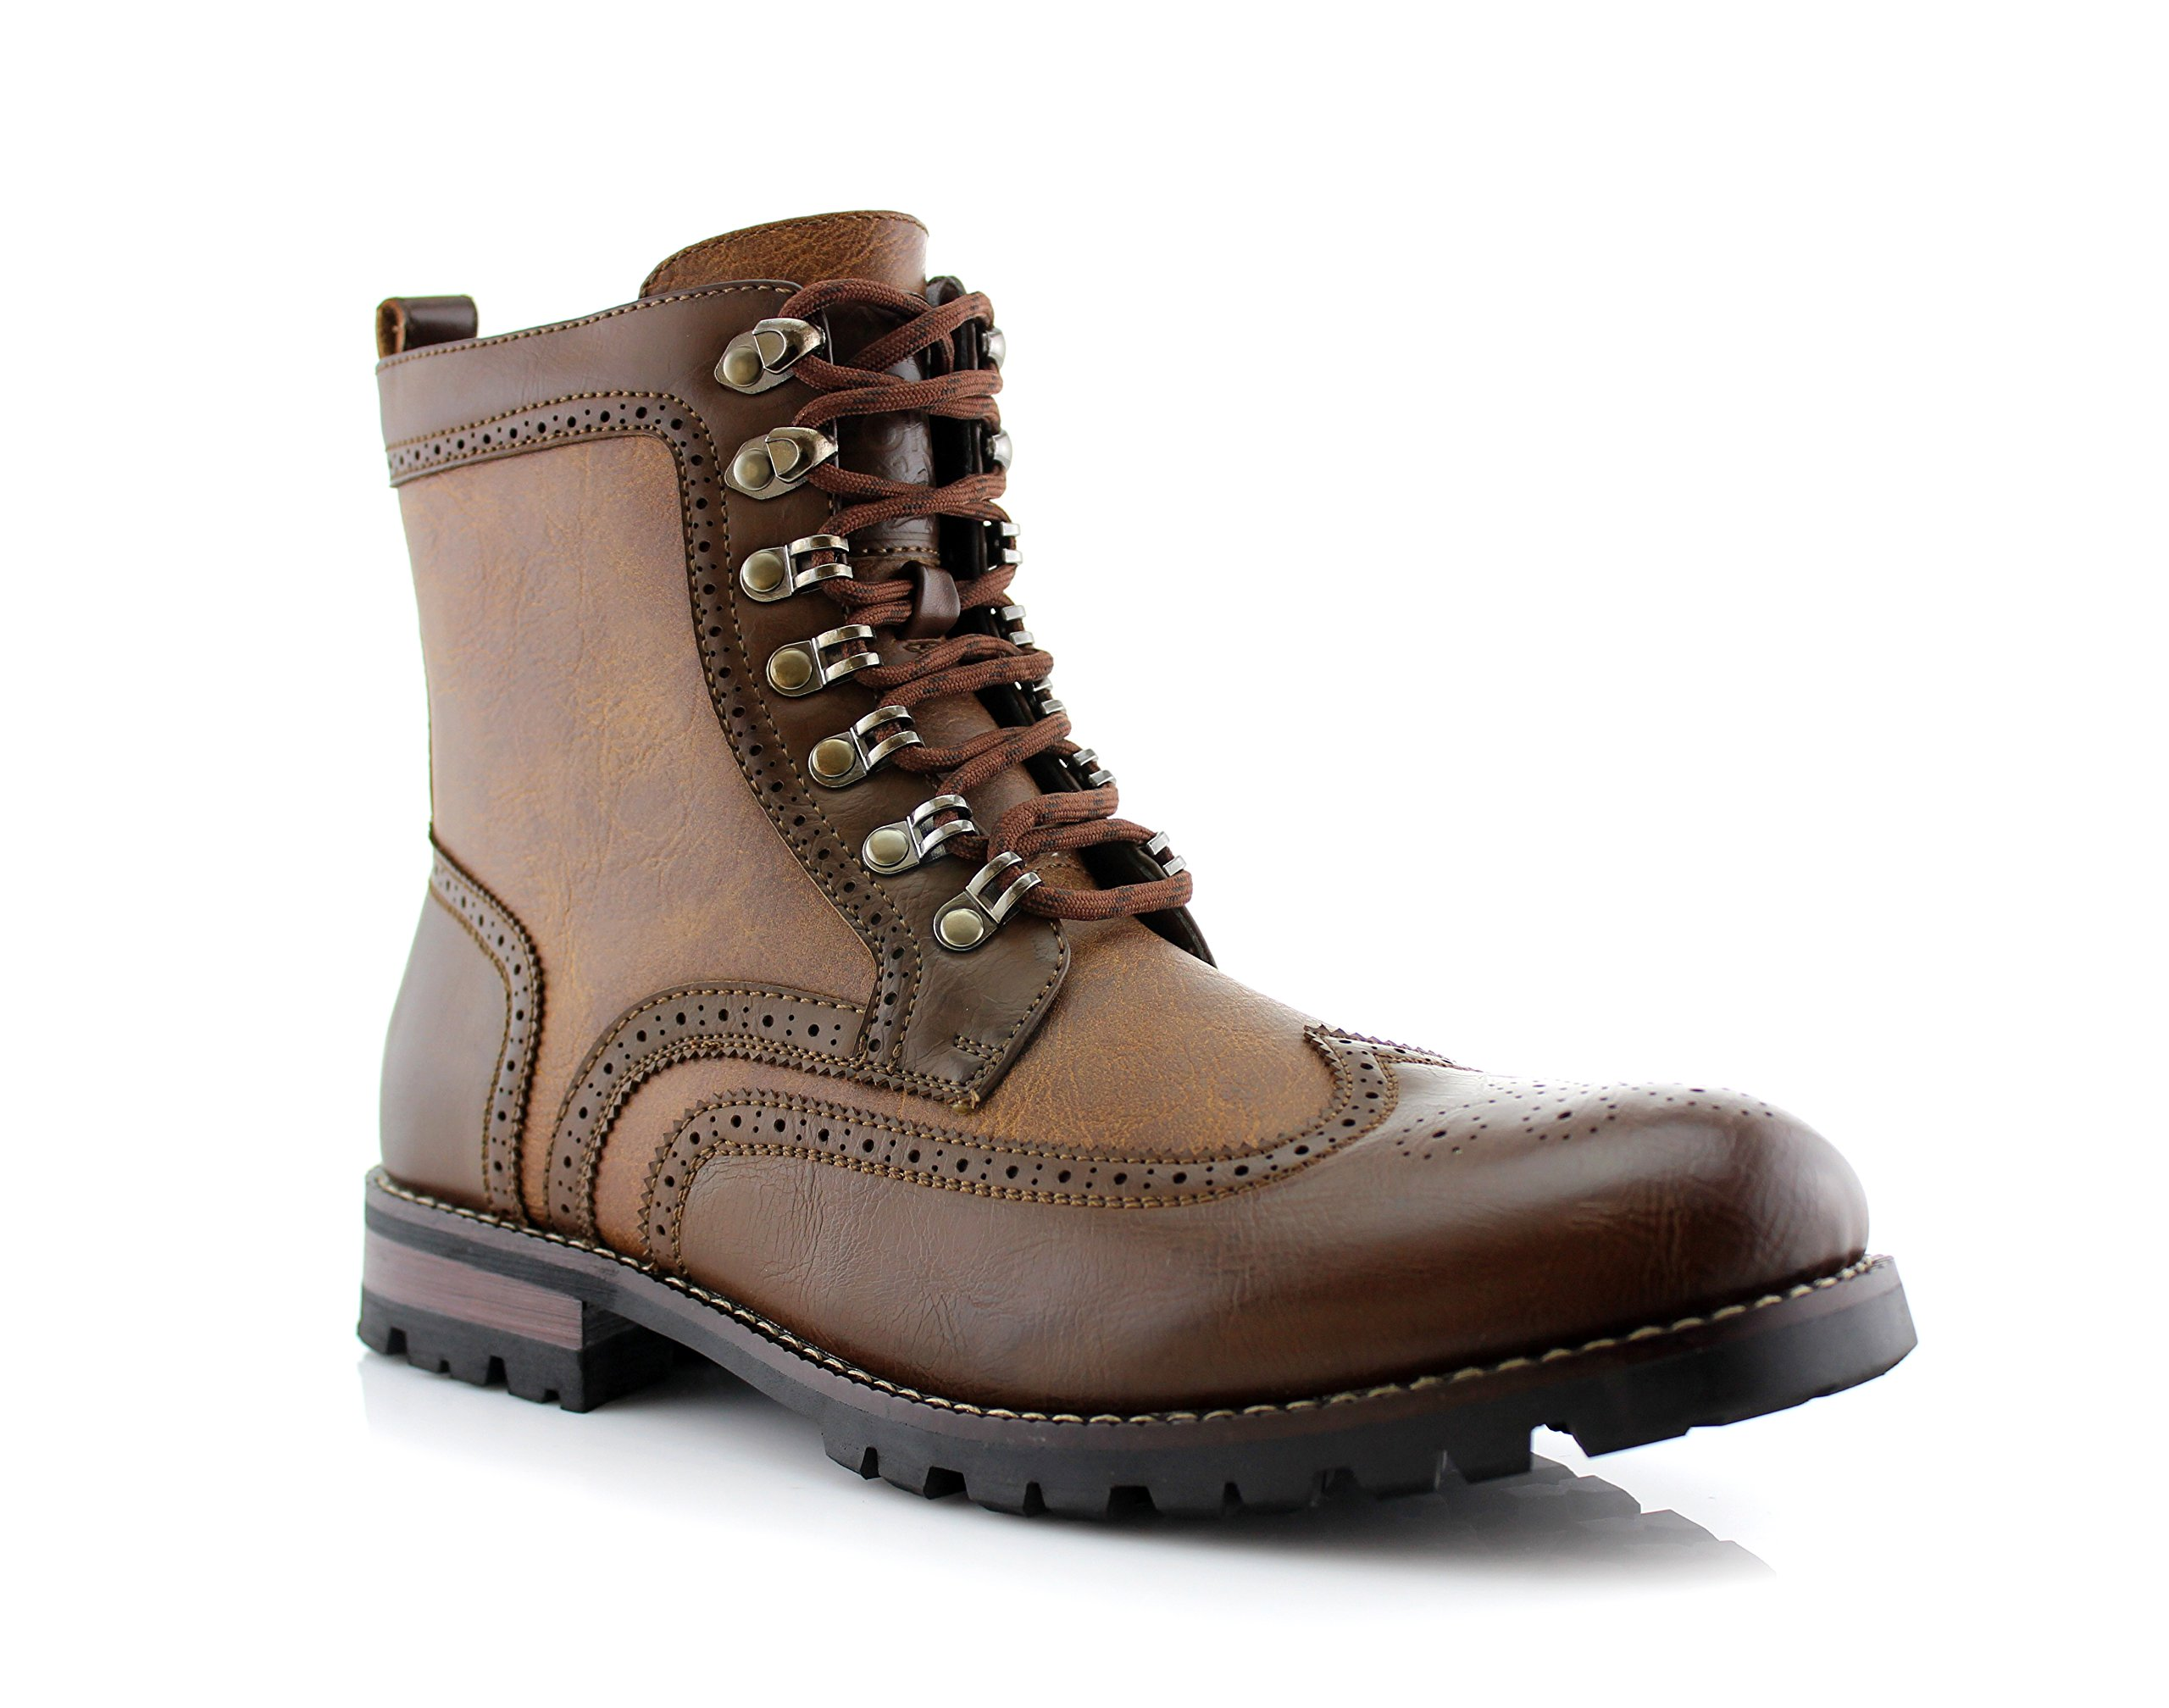 Polar Fox Cohen MPX808586 Mens Casual Wing Tip Perforated Military Combat Dress Boots - Brown, Size 8 by Polar Fox